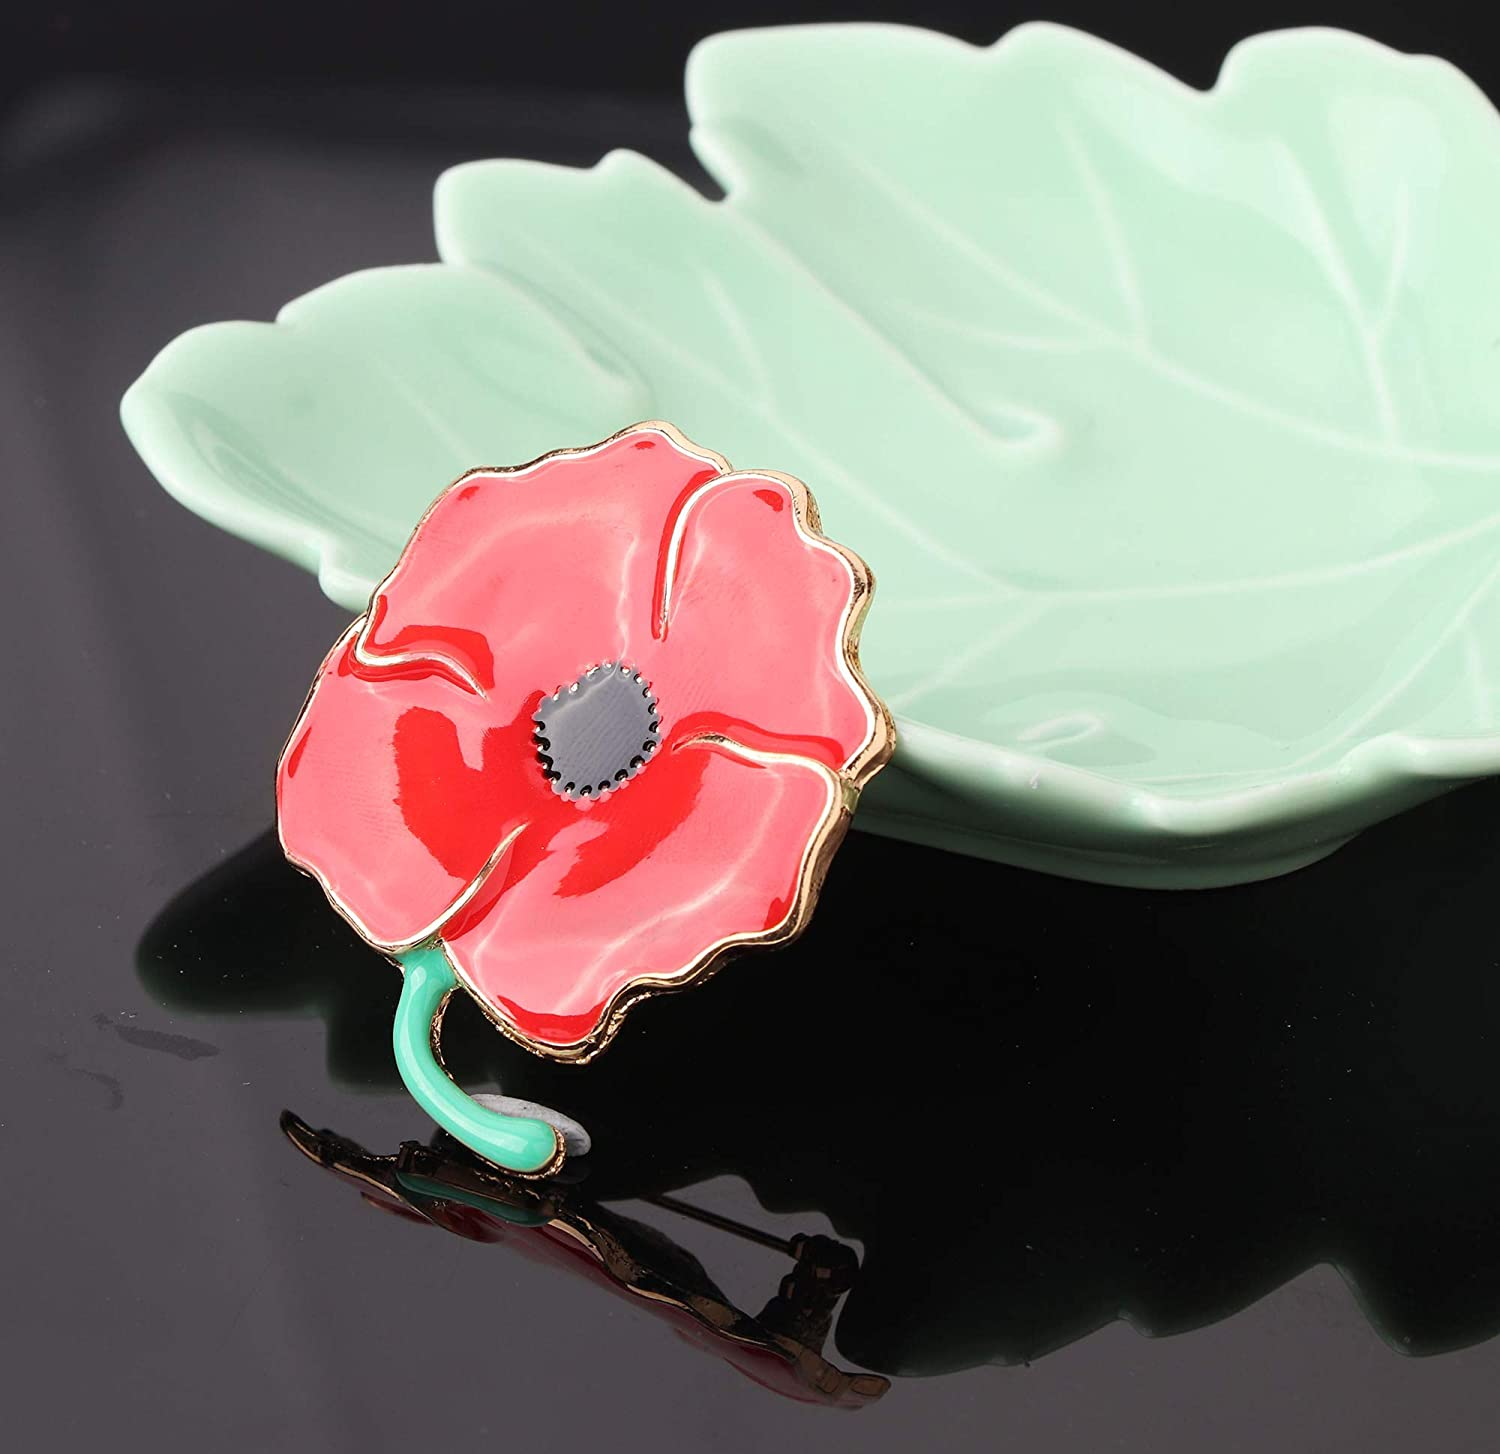 Subiceto 3 Pcs Red Poppy Brooch Pin for Women Men Lapel Badge Poppy Flower Pin Remembrance Day Lest We Forget Floower Badge Broach.